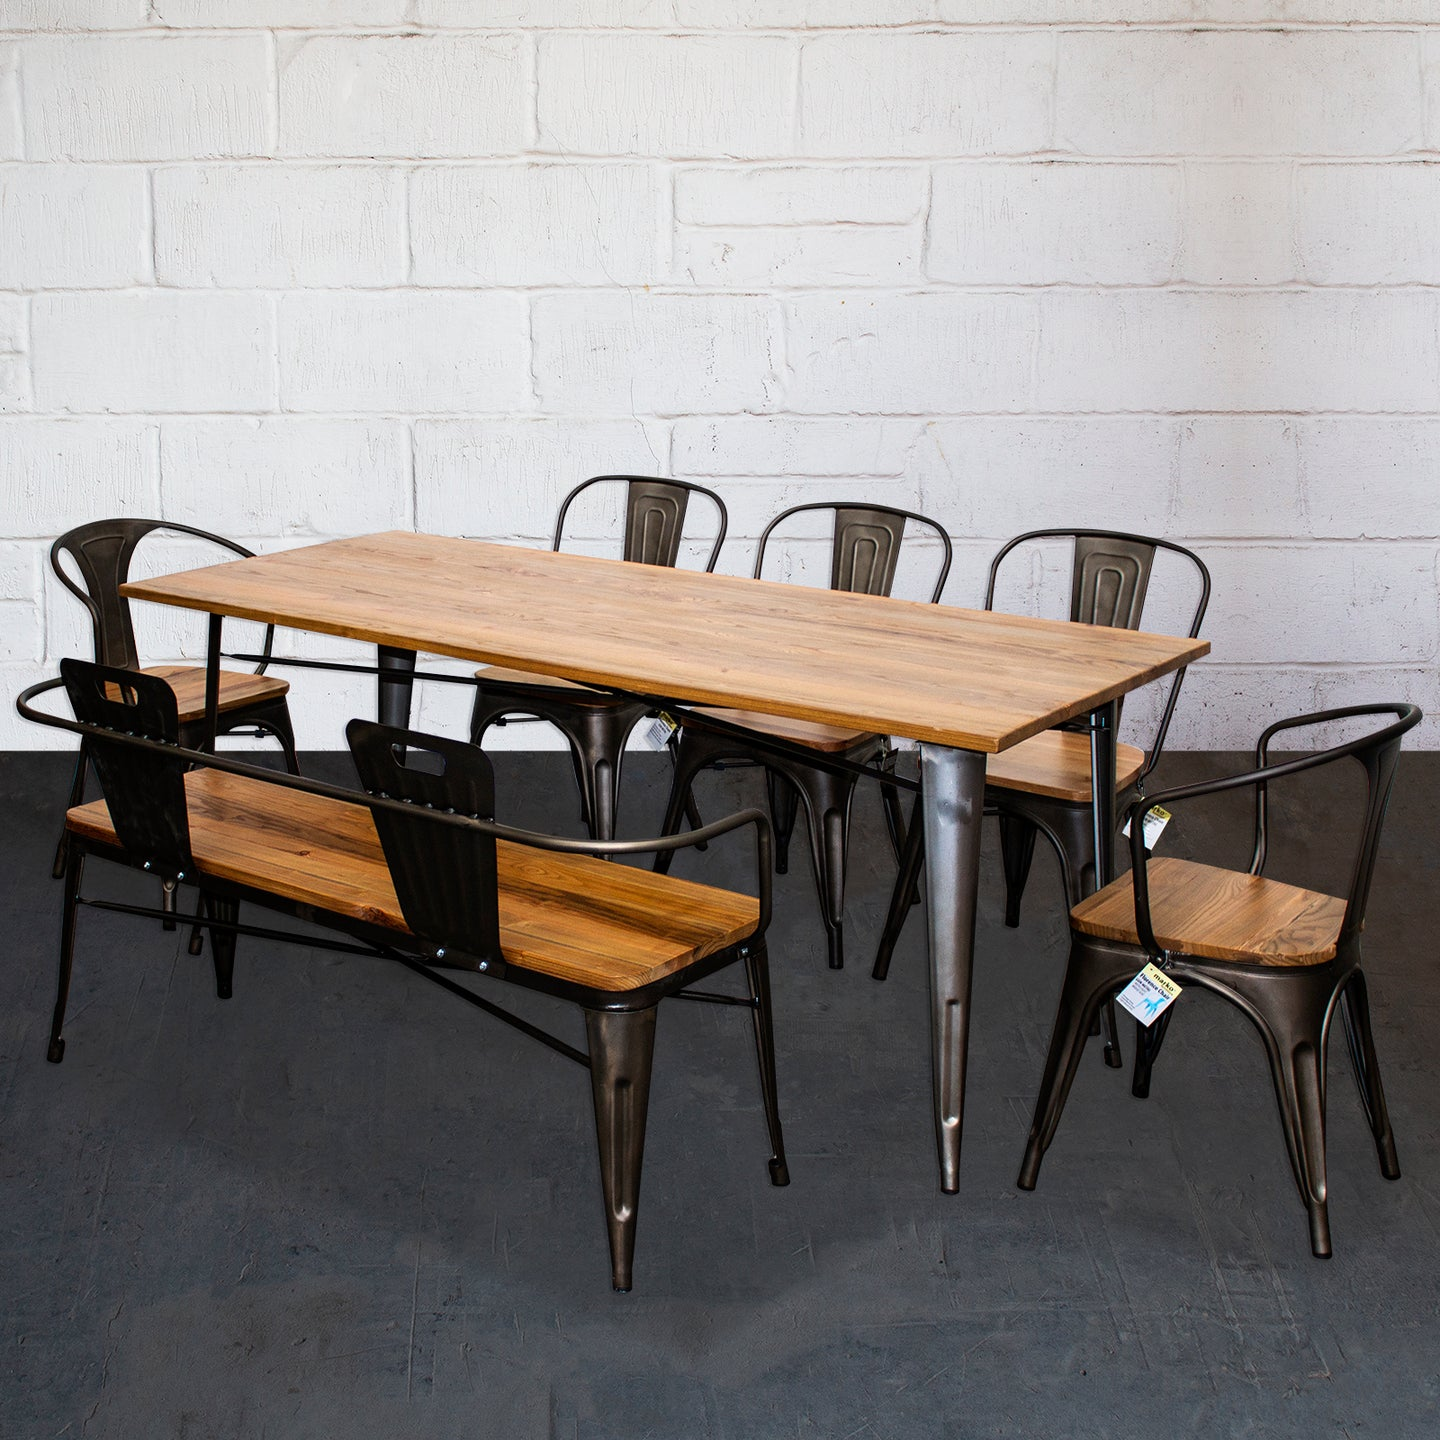 7PC Taranto Table, 2 Florence Chairs, 3 Palermo Chairs & Nuoro Bench Set - Gun Metal Grey